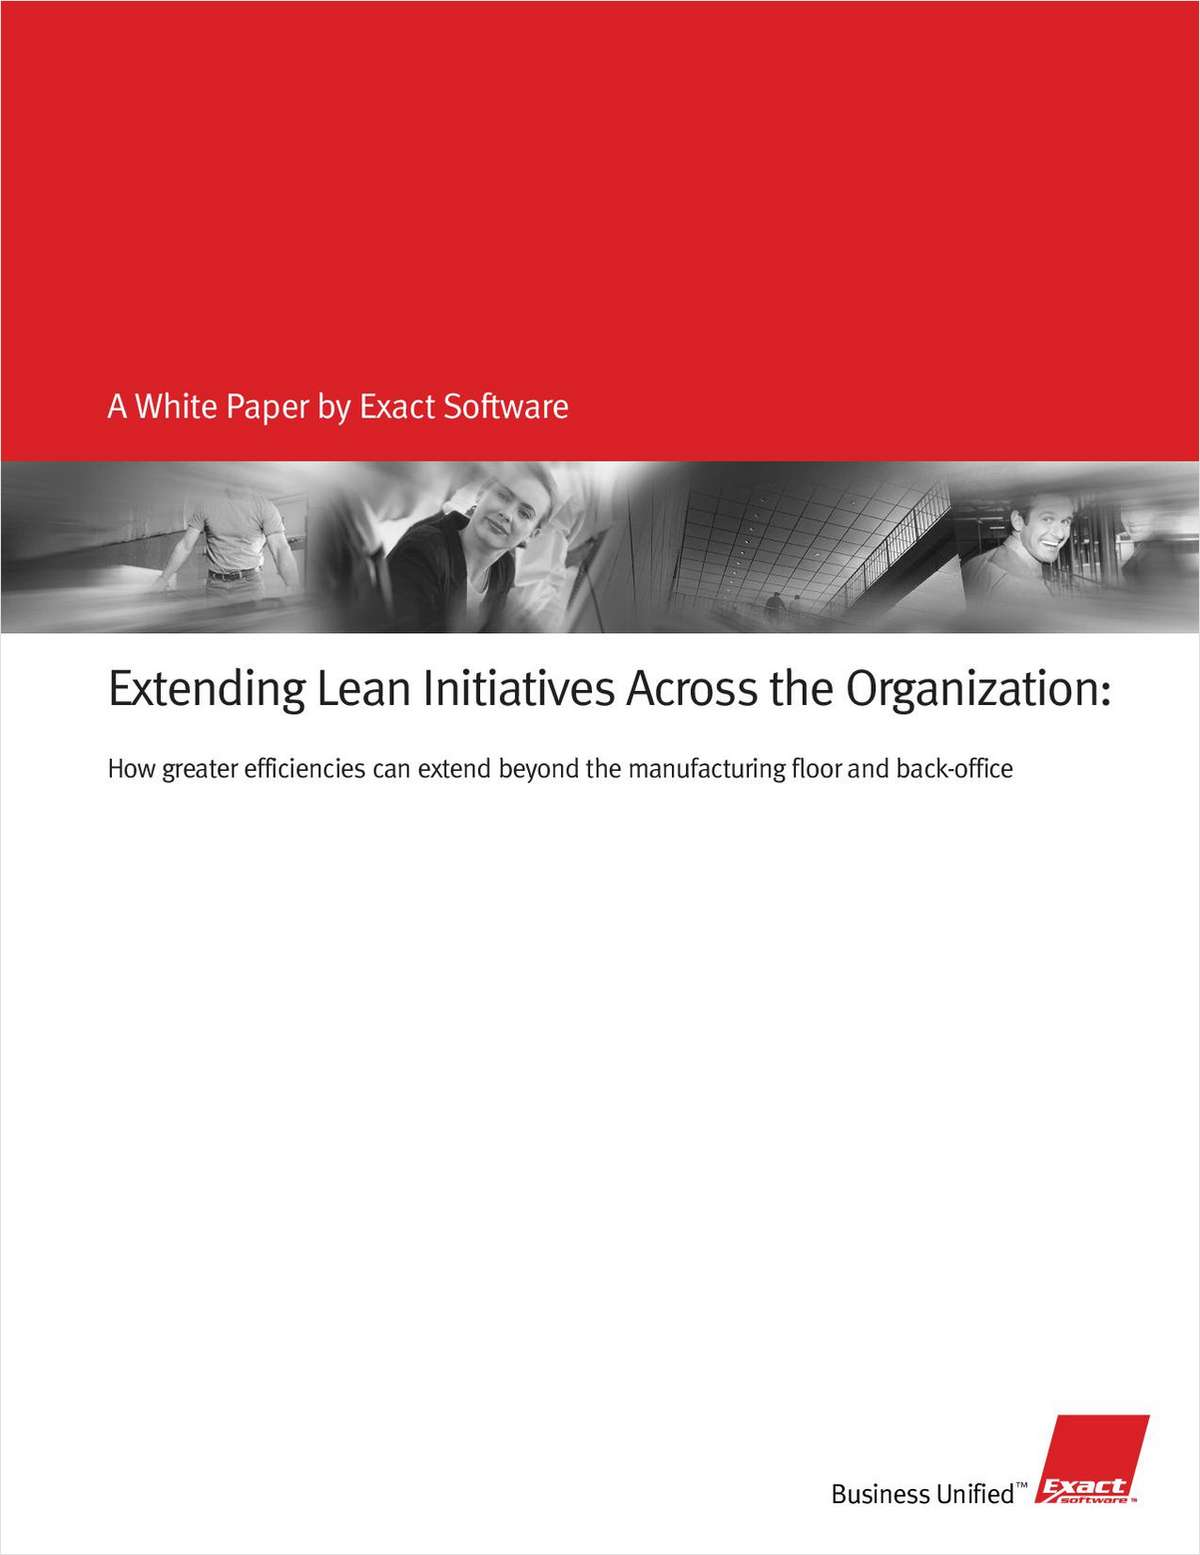 Extending Lean Initiatives Across the Organization